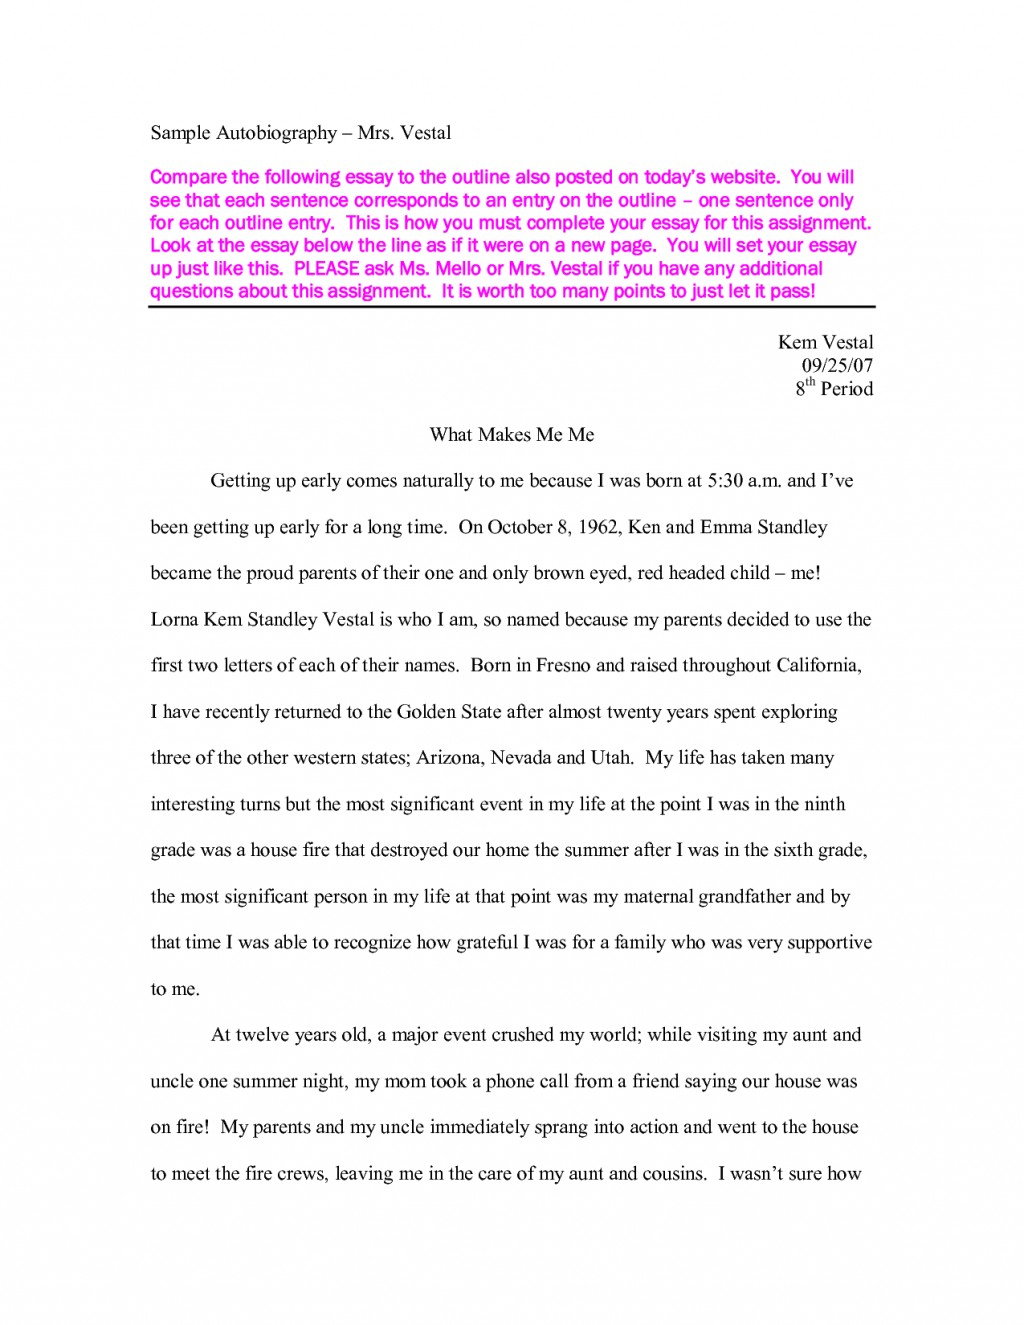 011 Essay Example Autobiography How To Write An Stirring Sample For High School Pdf Autobiographical Large